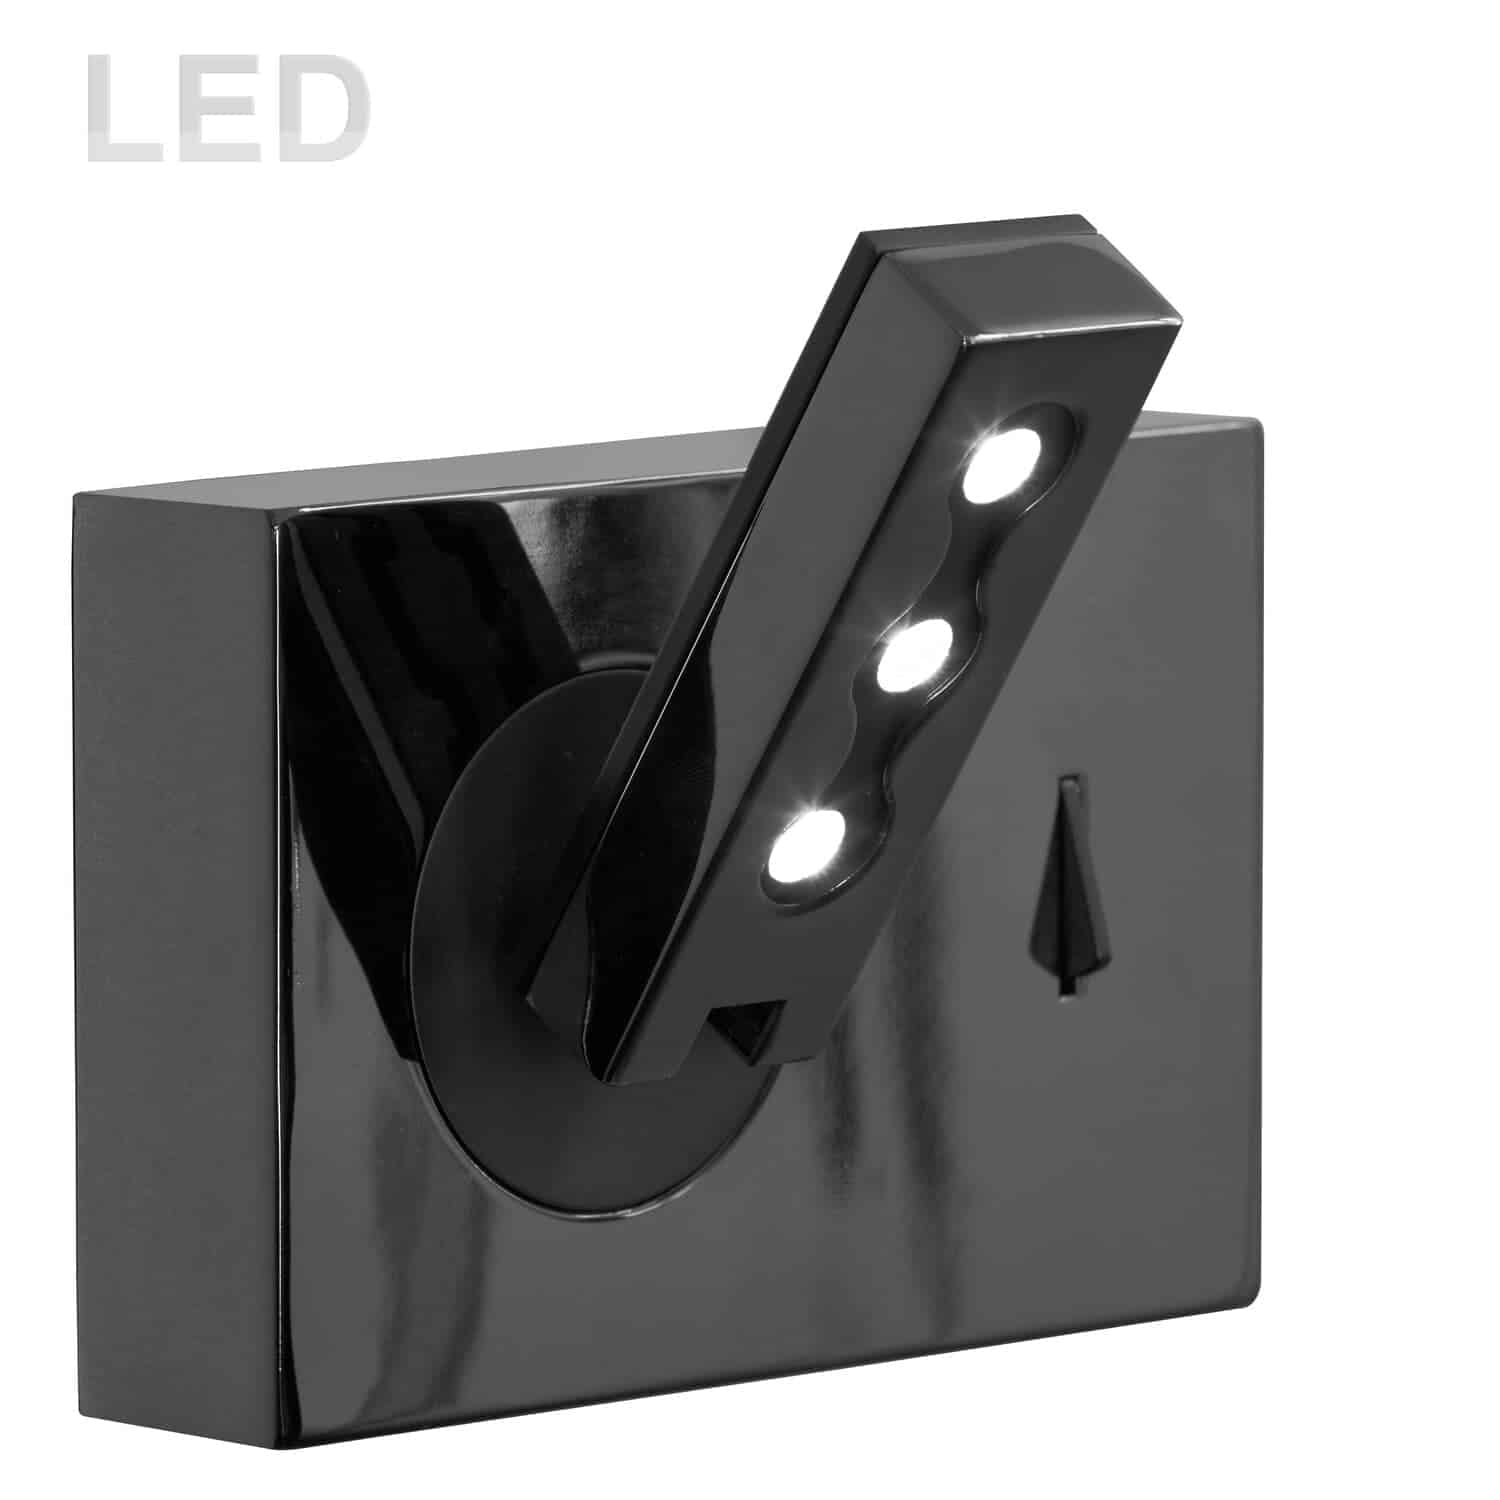 Wall Sconce w/LED Reading Lamp, Black